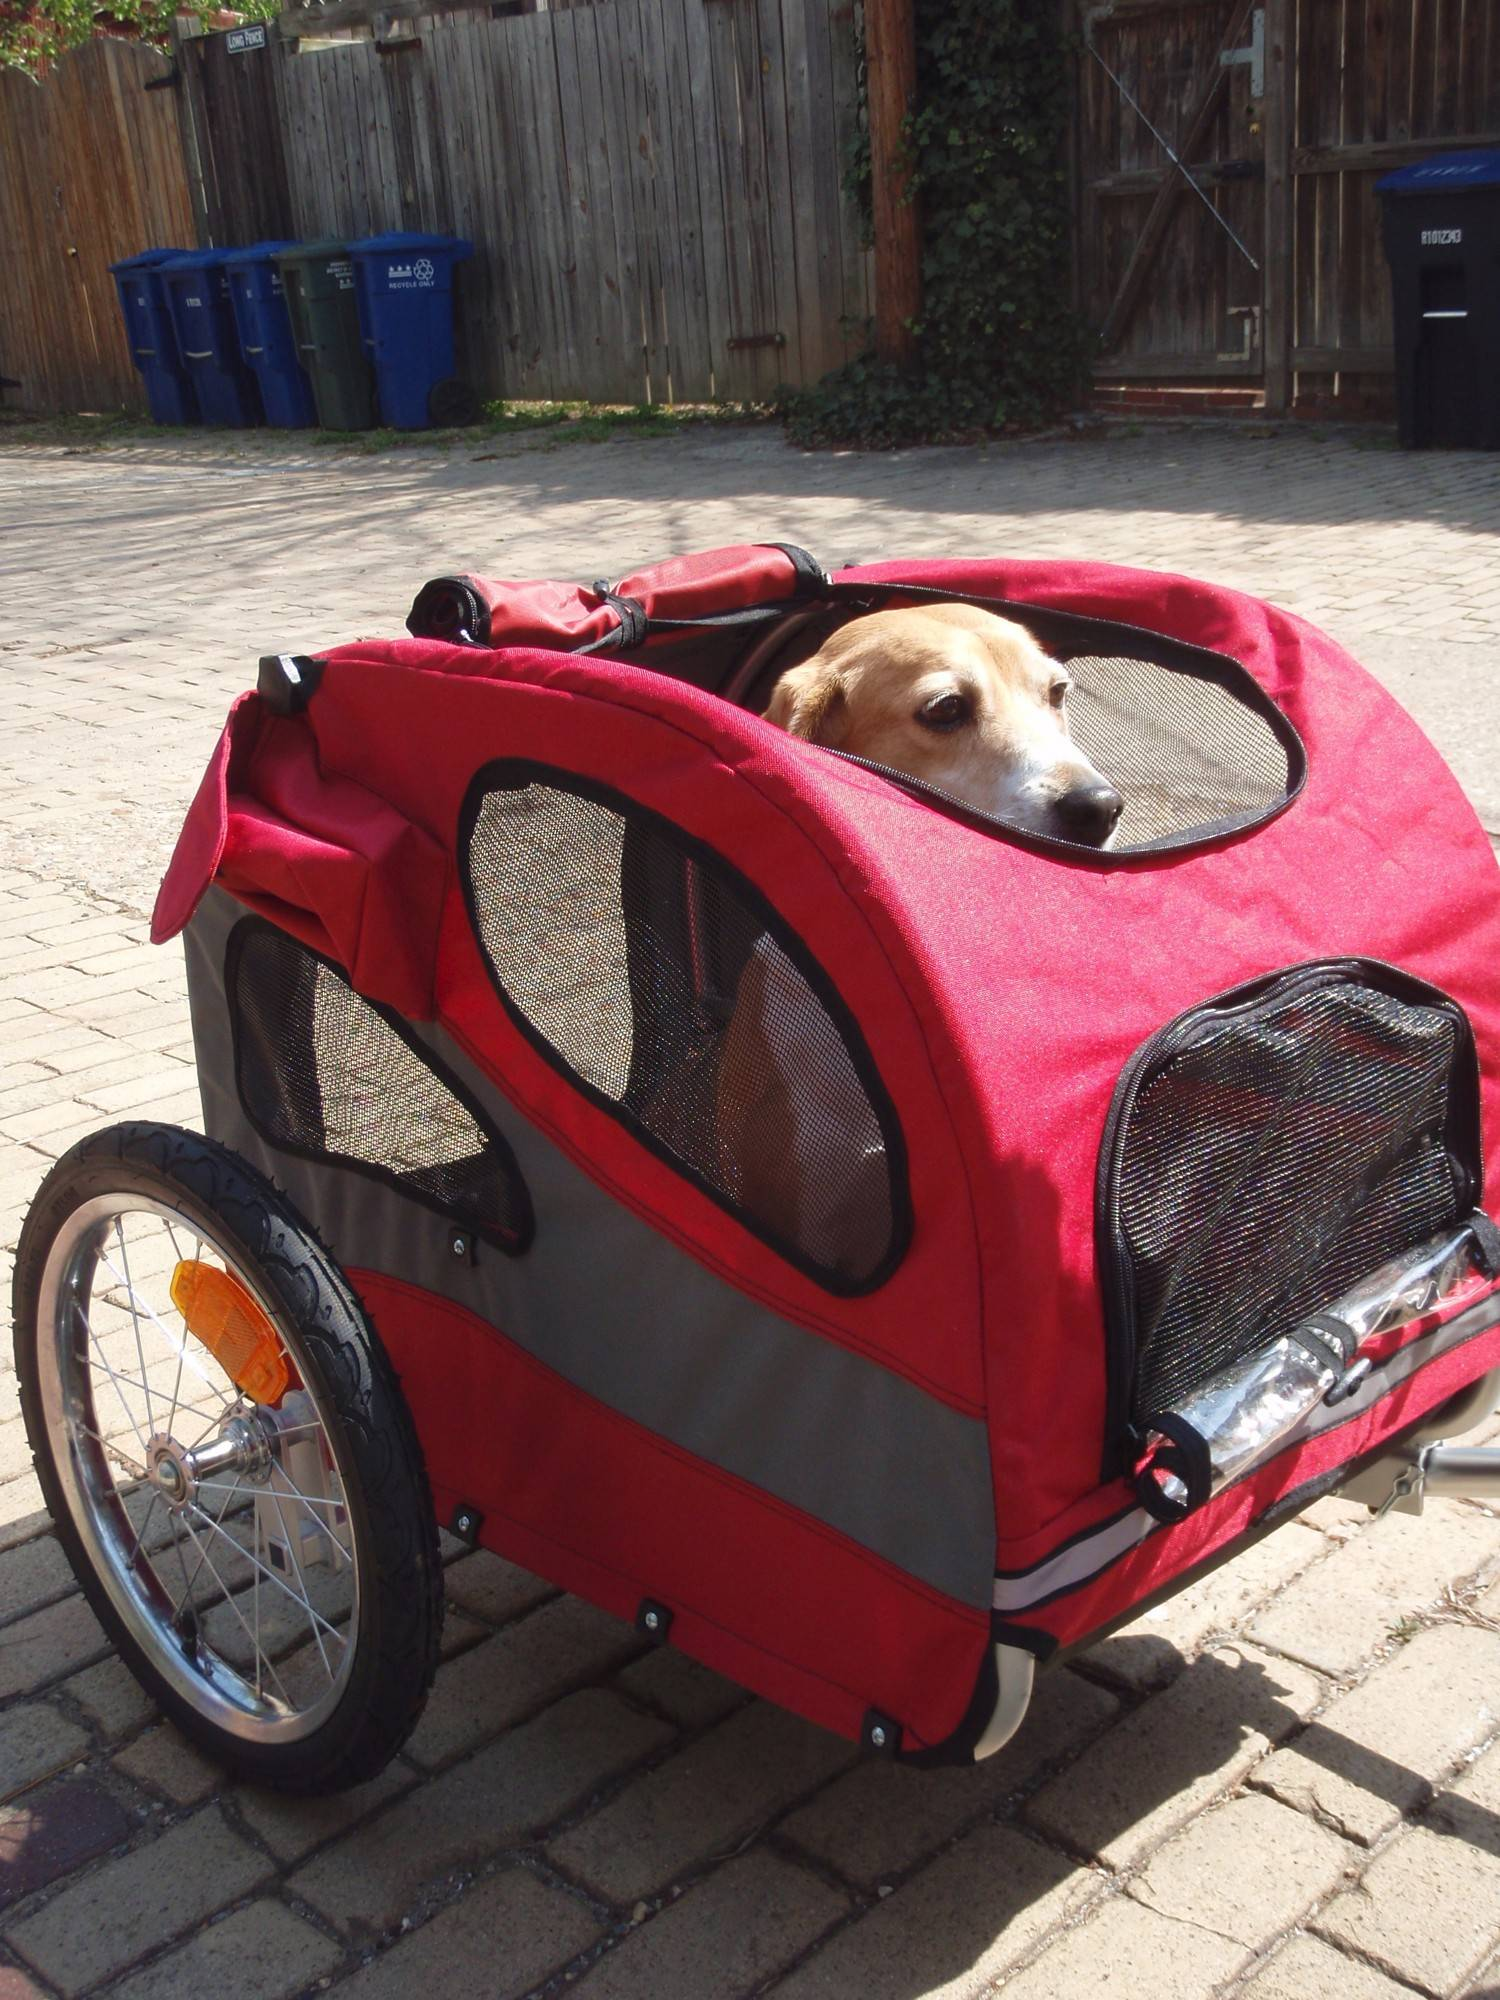 Hammy prepares for his first test ride in the Solvit HoundAbout II Bicycle Trailer.